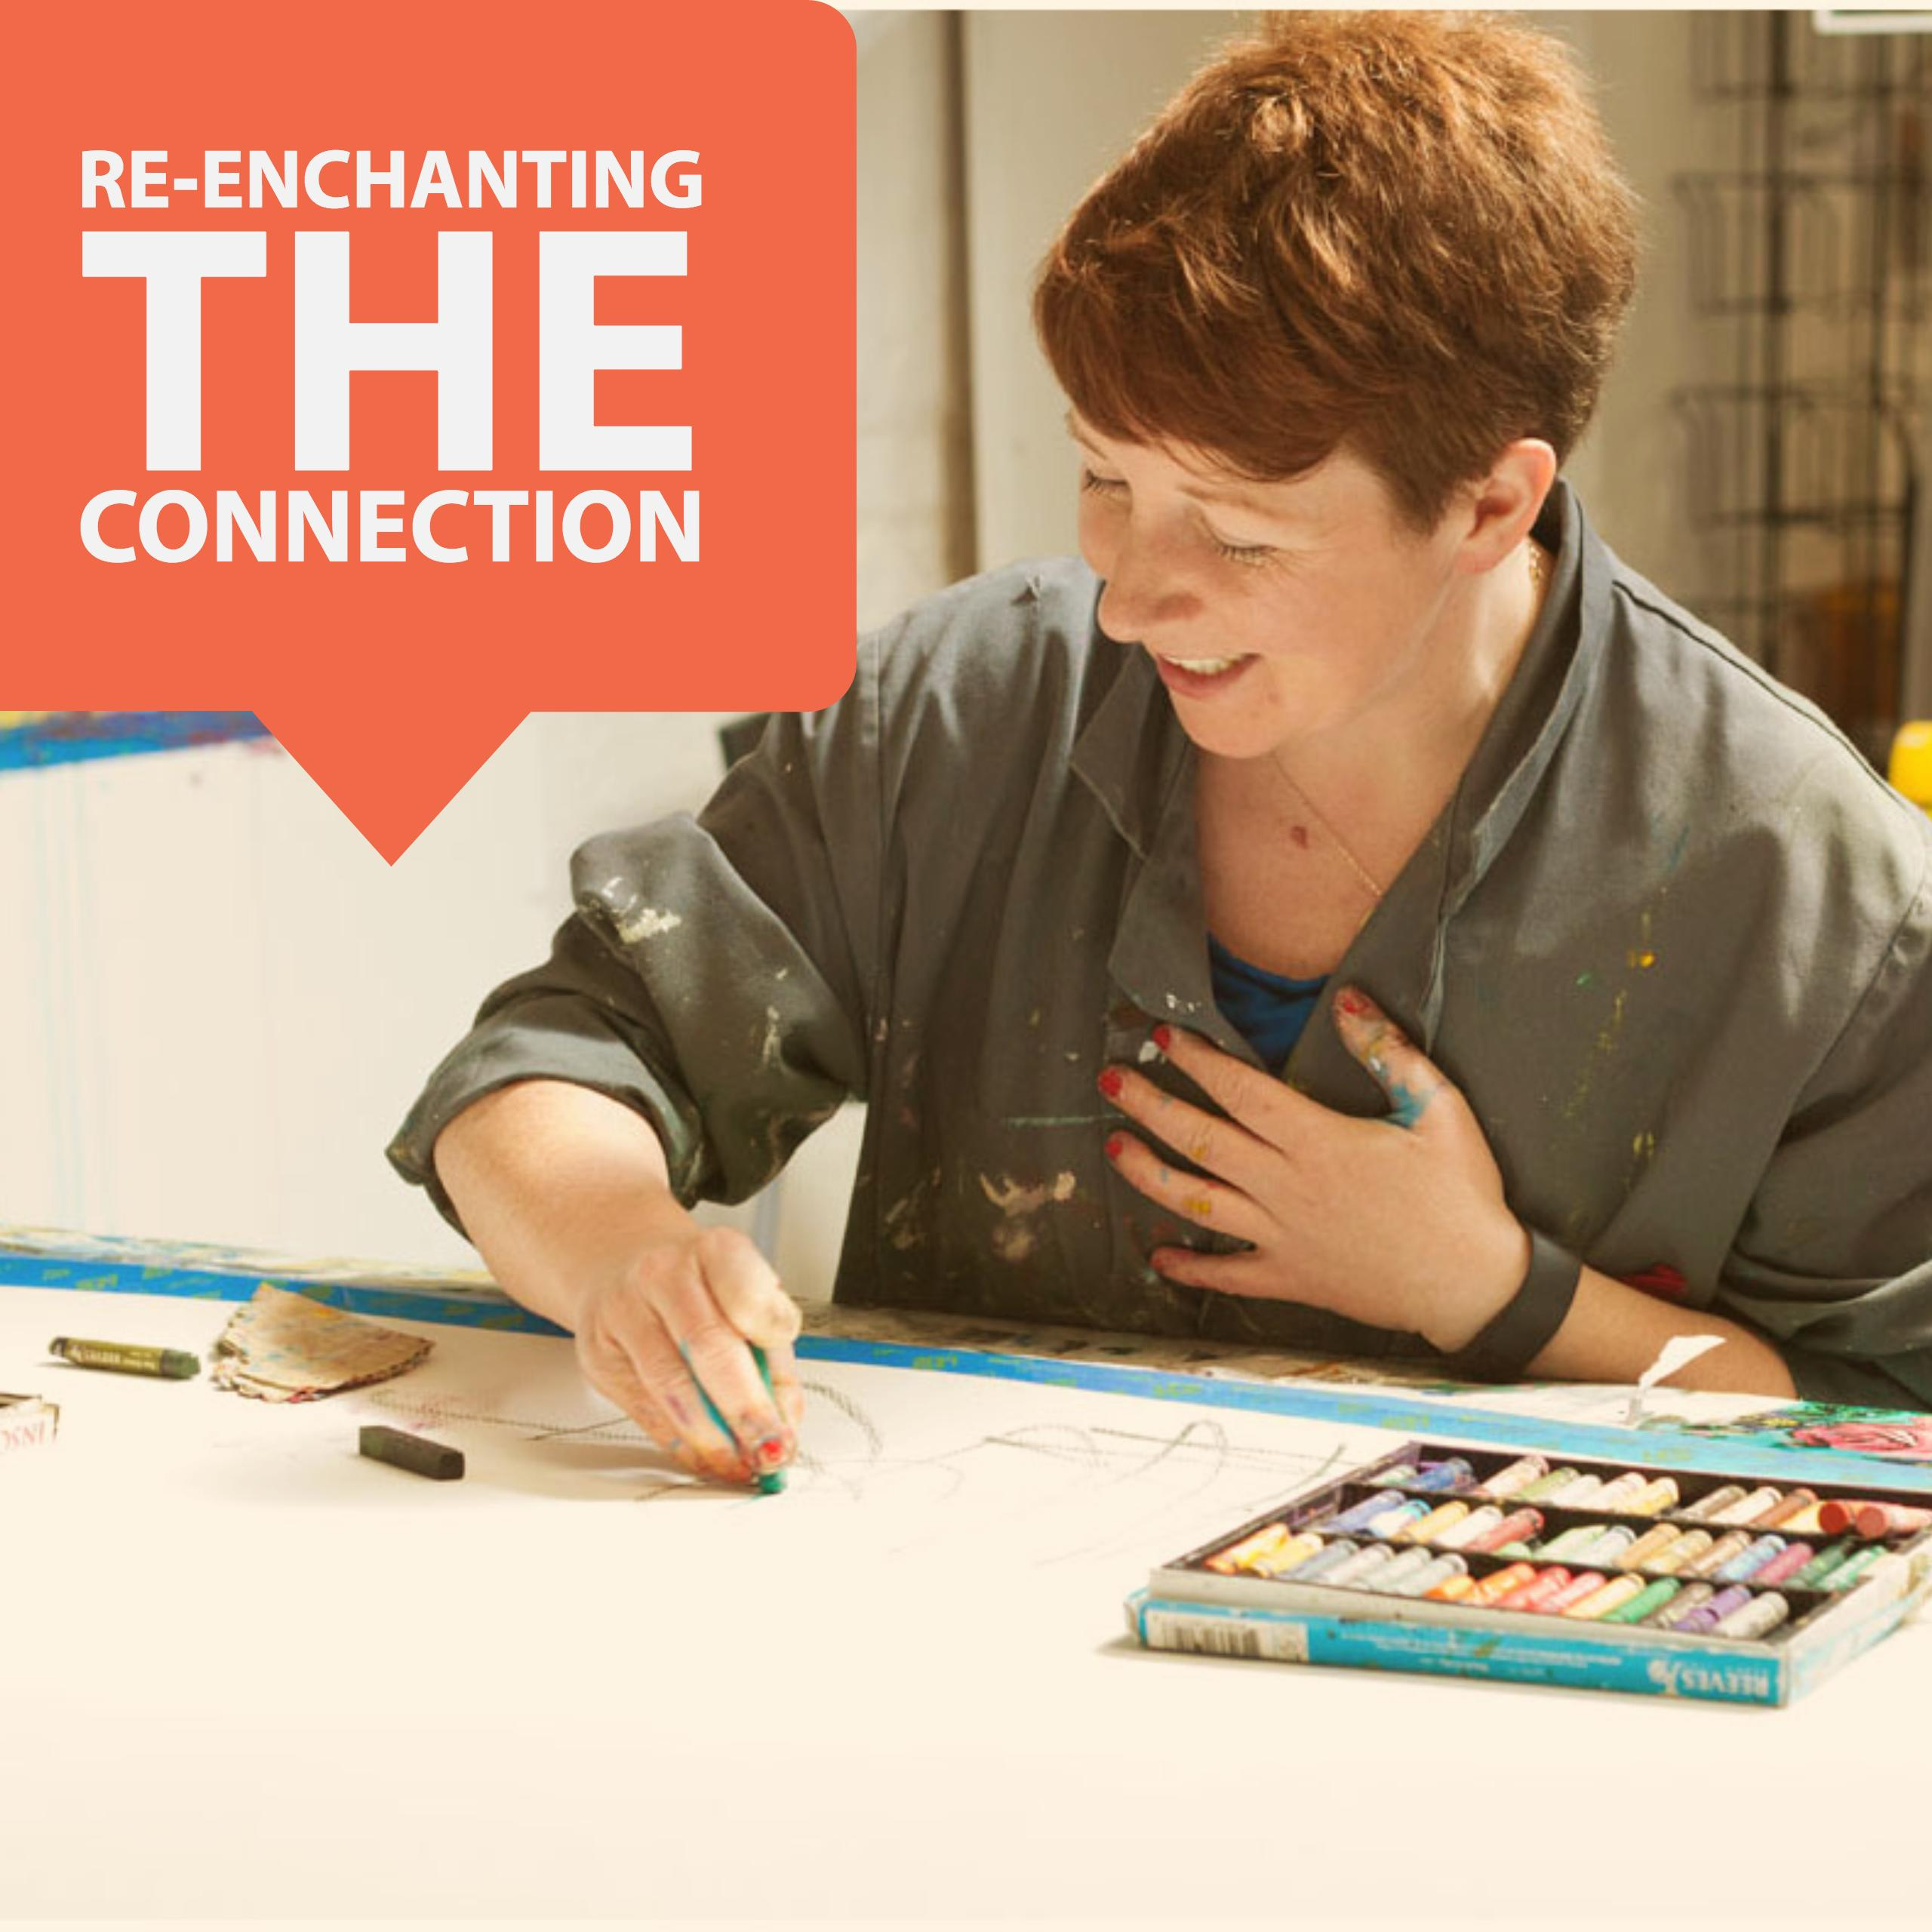 Re-Enchanting the Connection, Dublin, 13-14 May